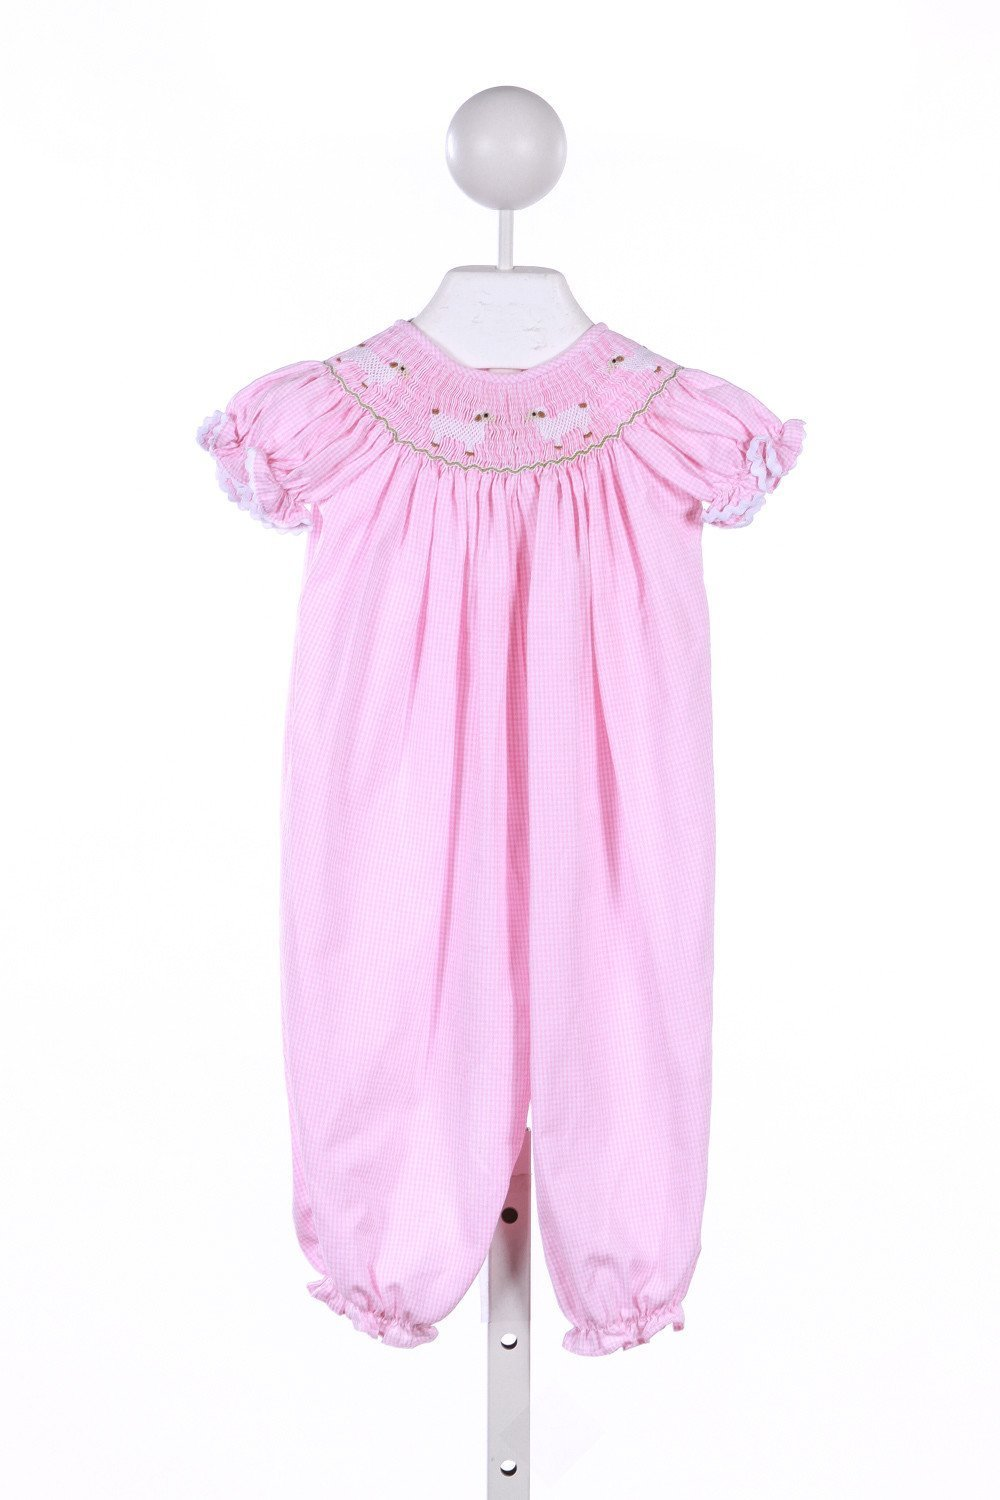 CECIL & LOU PINK GINGHAM ROMPER WITH SHEEP SMOCKING